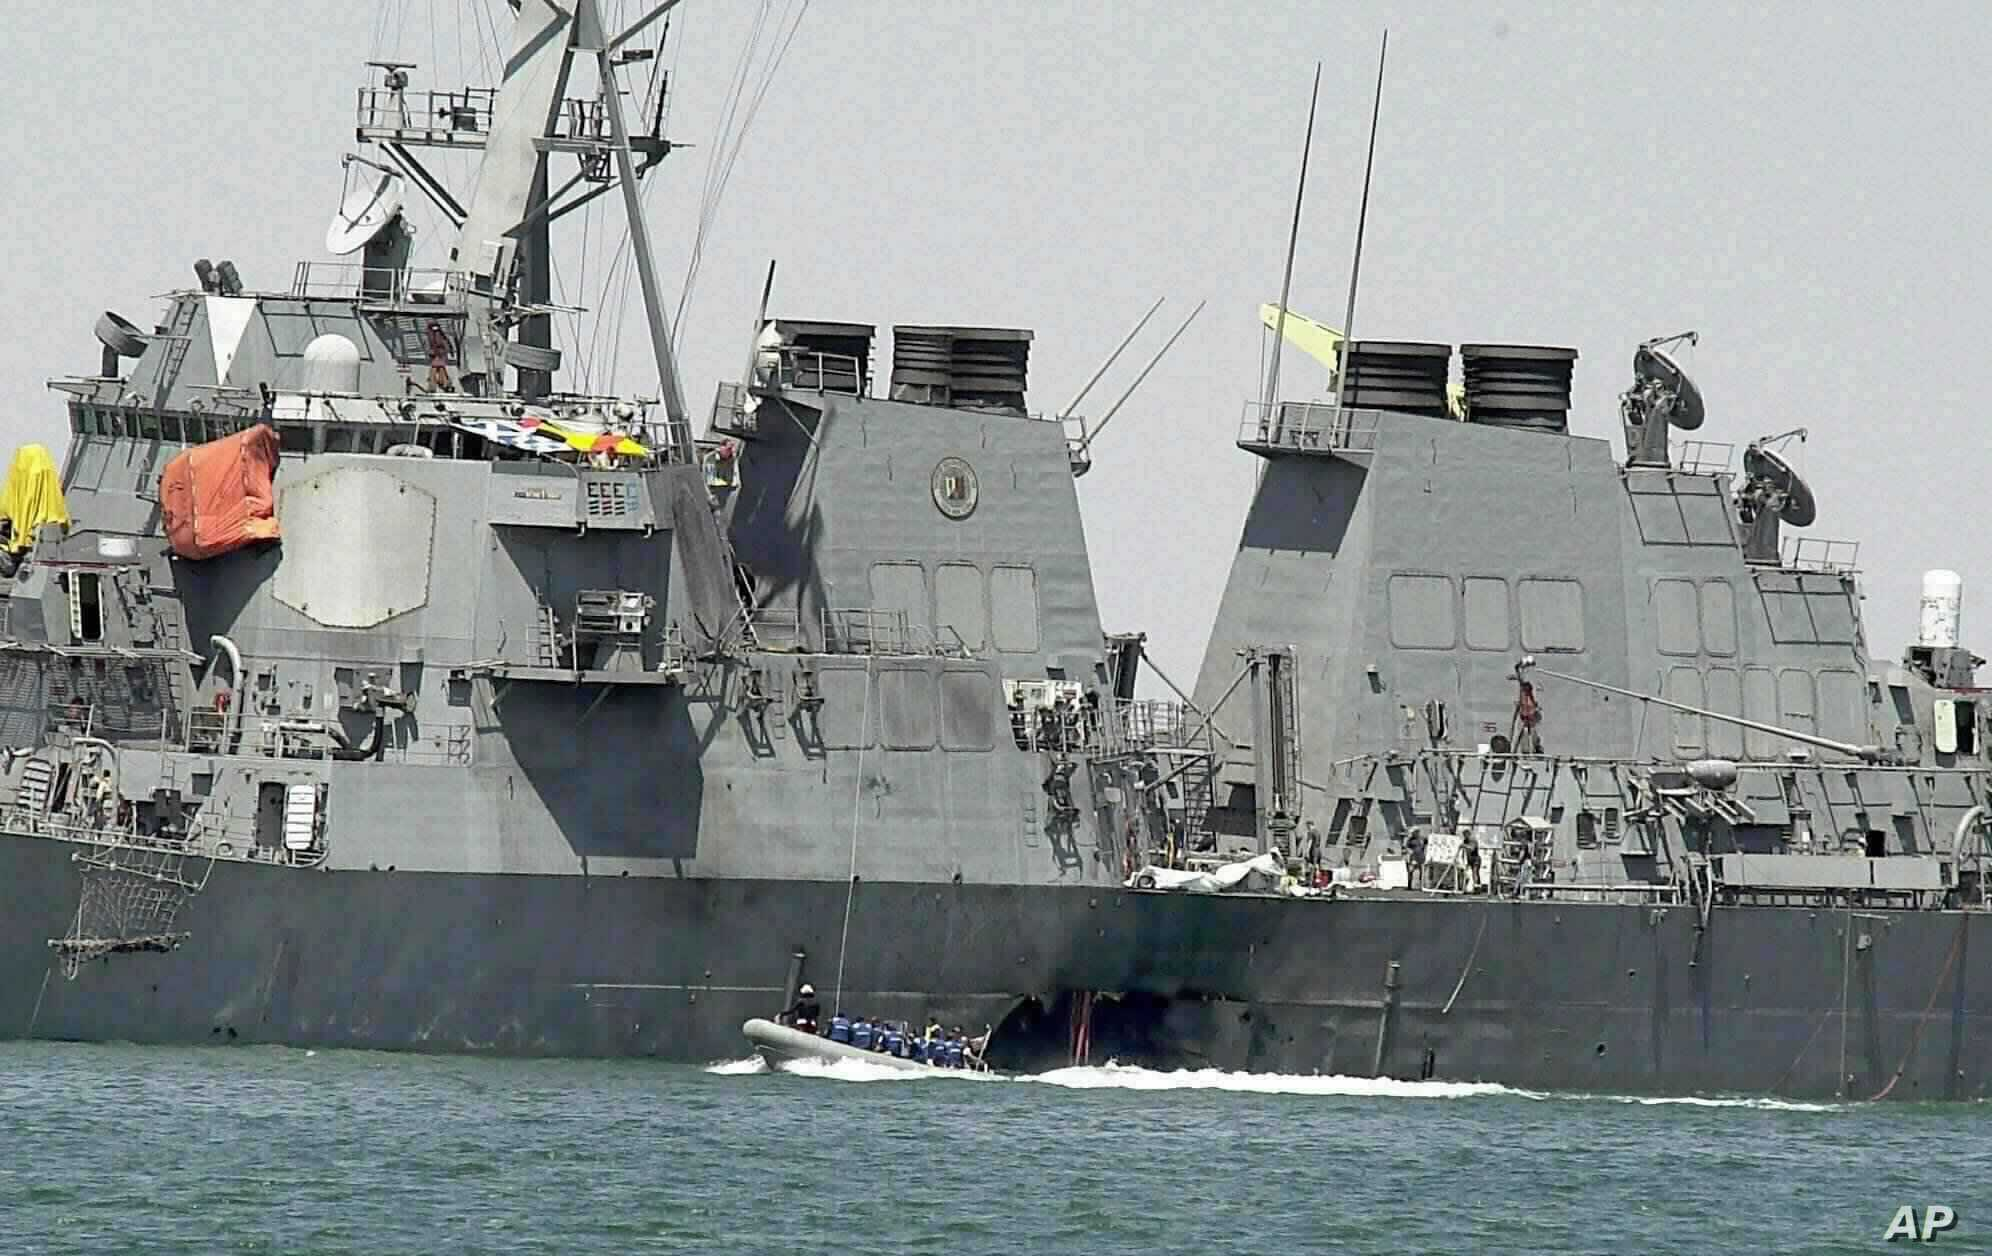 Sudan reaches settlement with Cole families; FdL sailor among victims